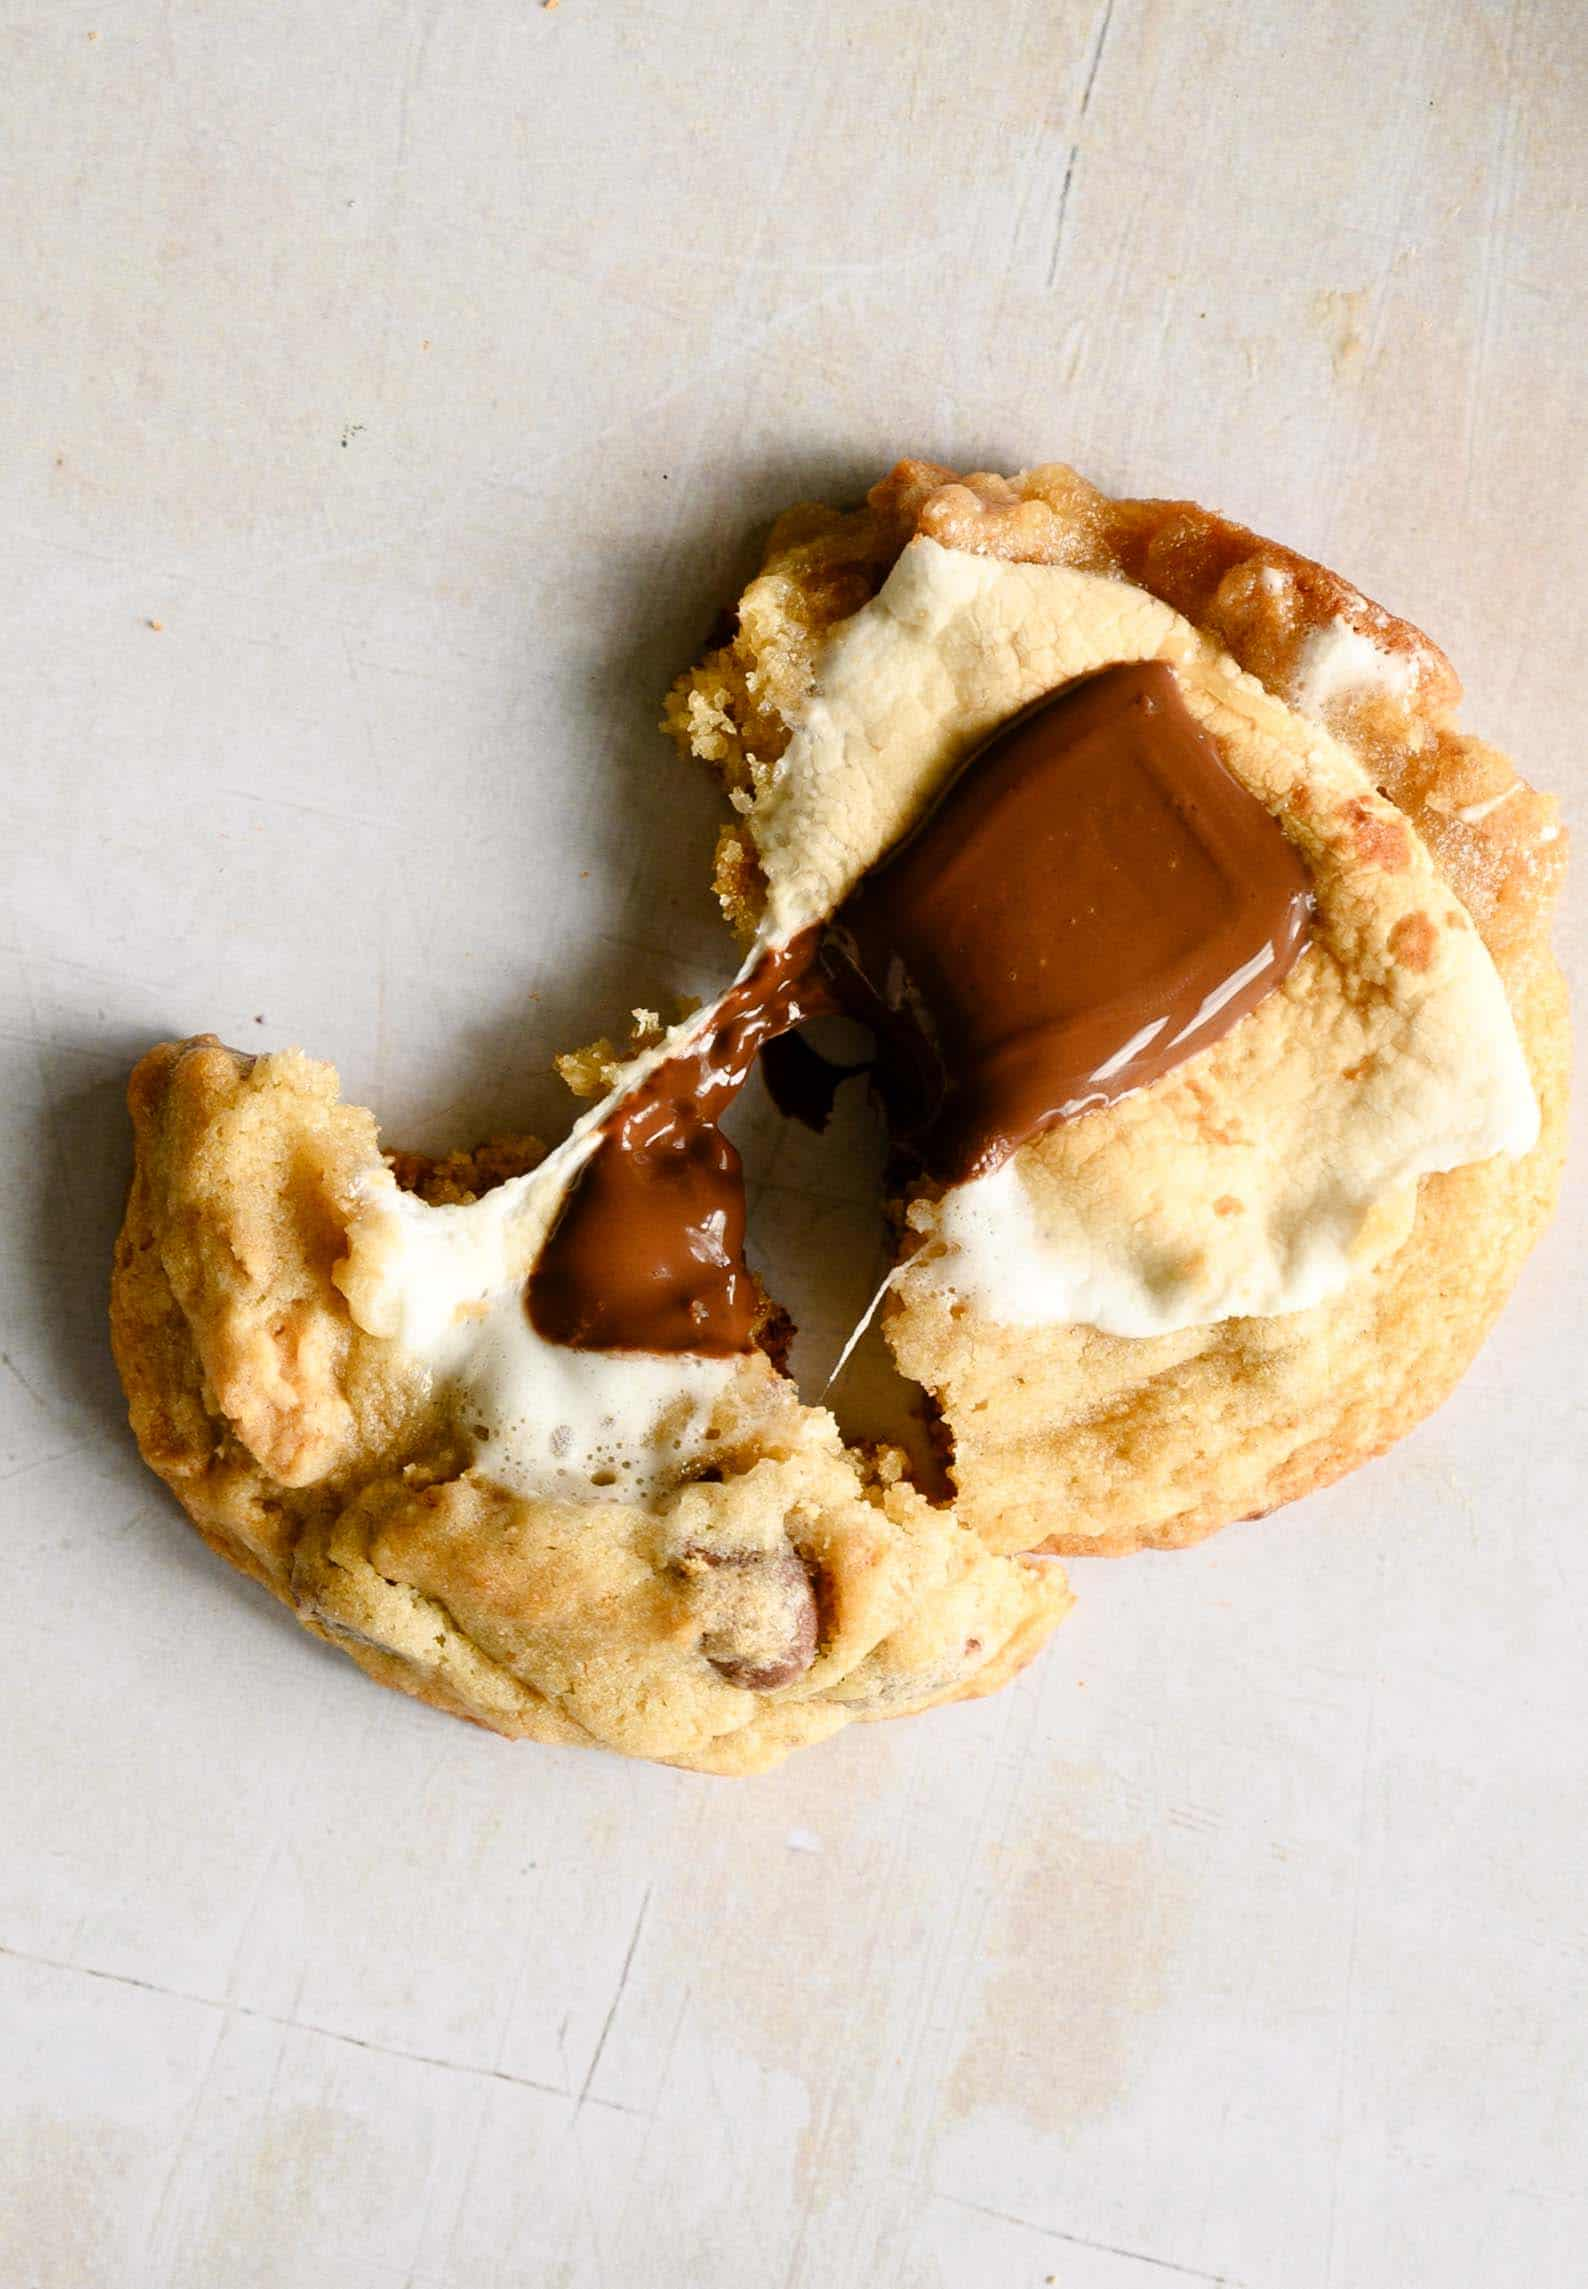 a chocolate and marshmallow covered chocolate chip cookie with a bite out of it